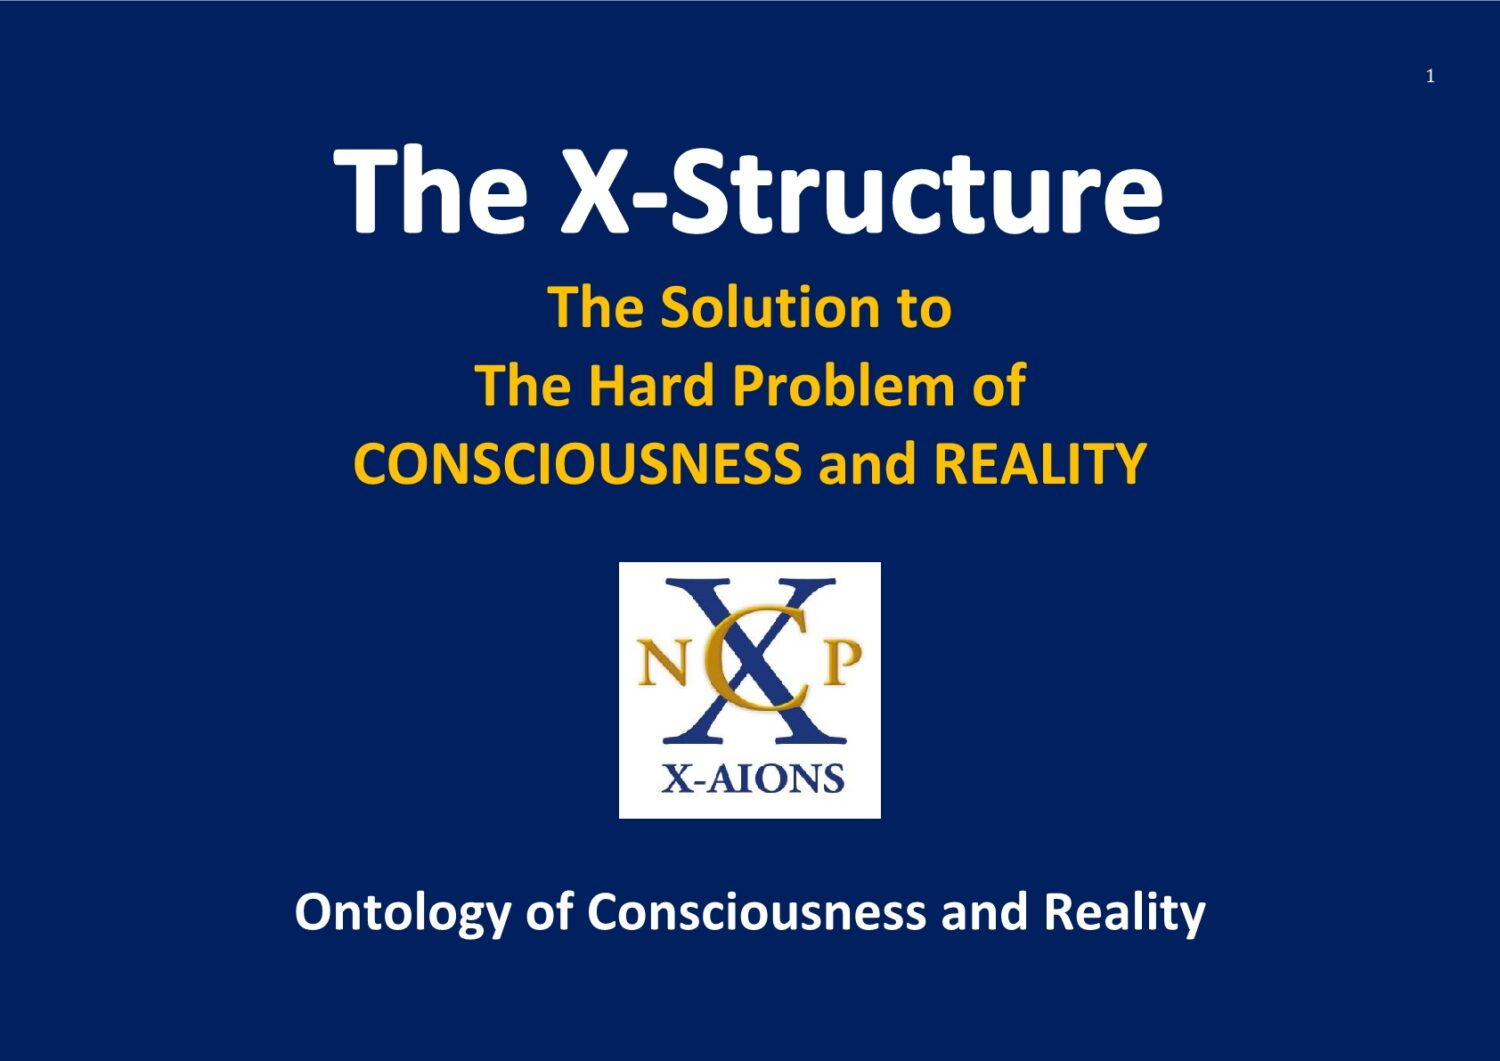 The X-Structure and The Hard Problem of Consciousness and Reality NCP X-AIONS